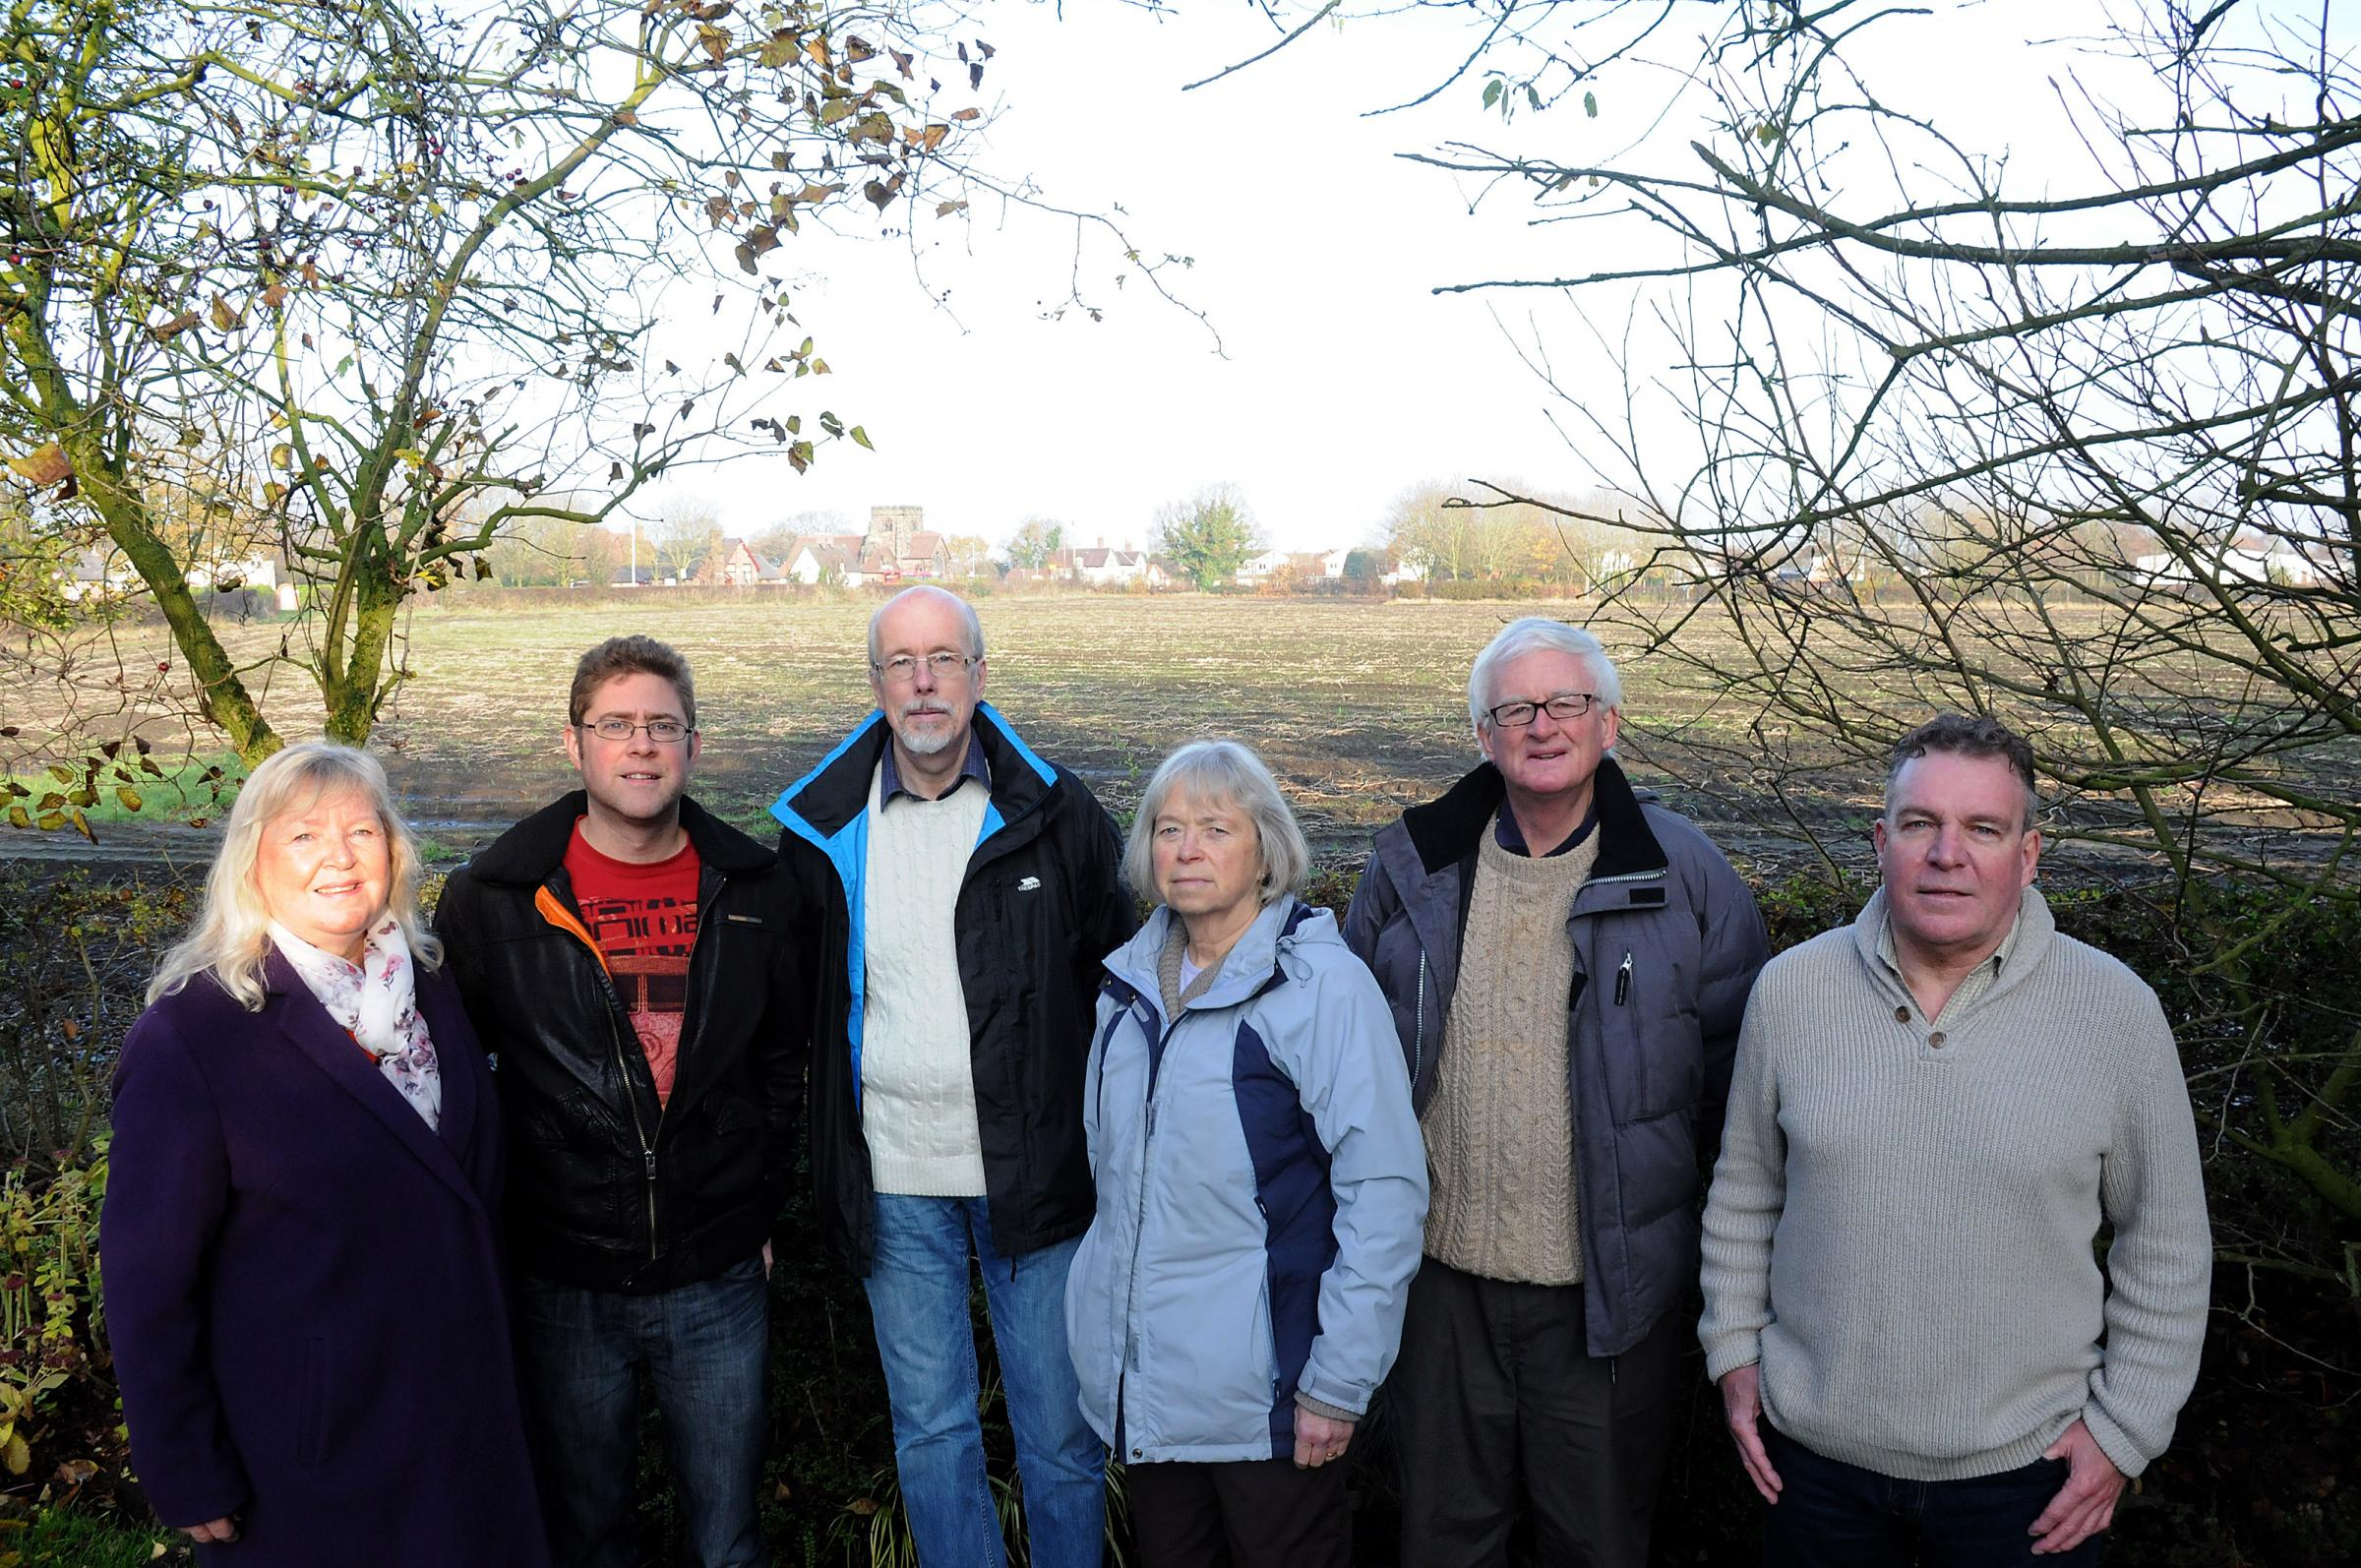 CARE committee members at the site, from left, Carole McNab, Ben Varley, Alan Murray, Liz McAloon, Kevin McAloon and Mark Eardley